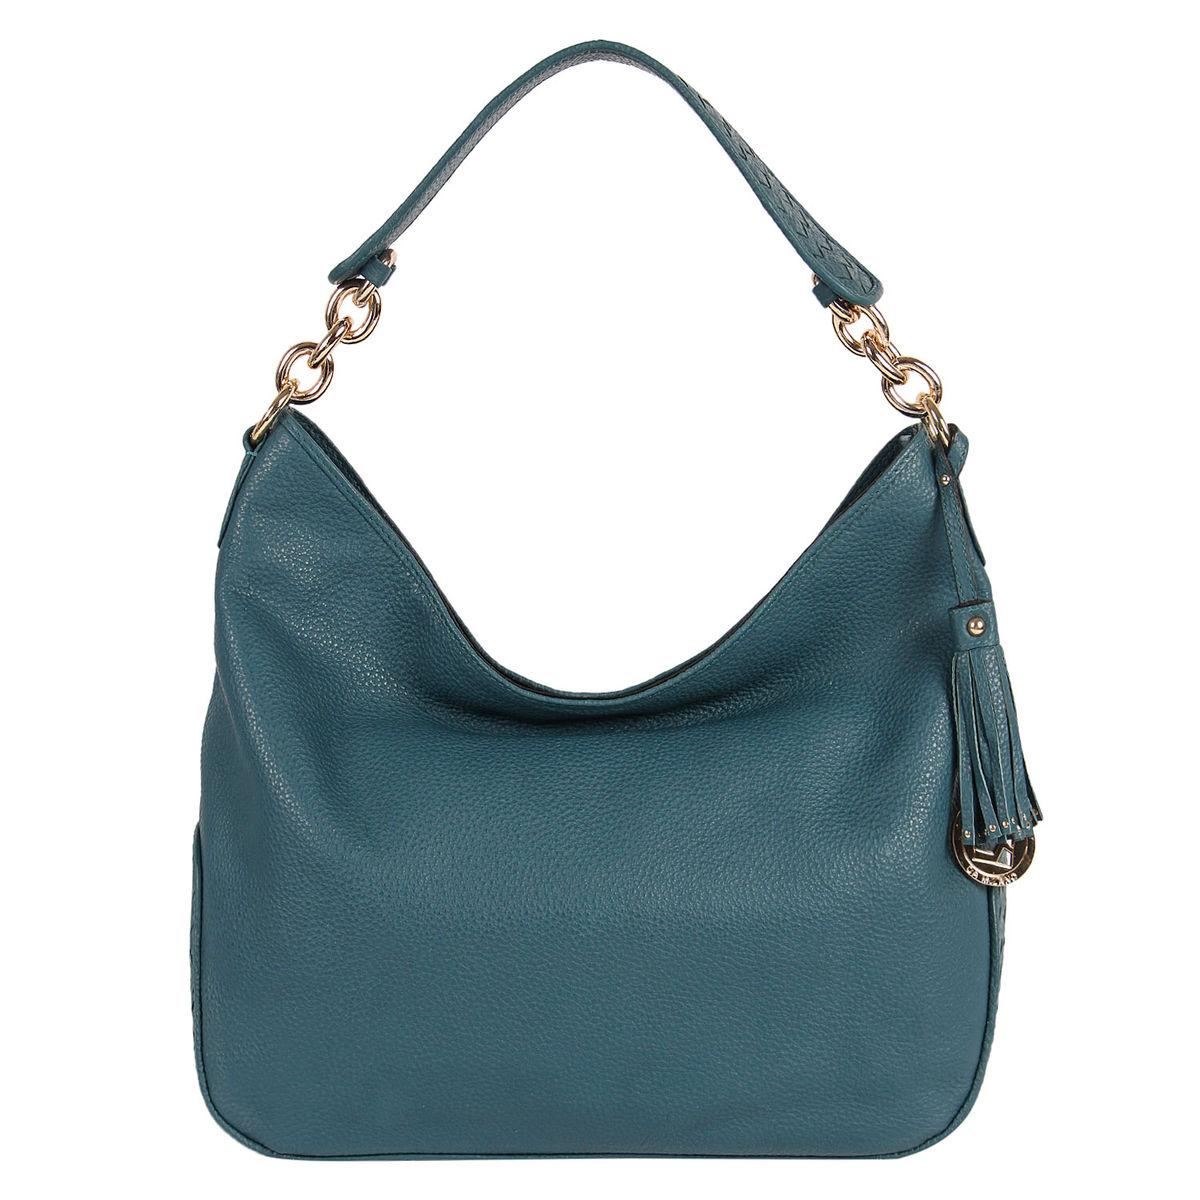 Da Milano Green Hobo Bag  e998b05bc00a